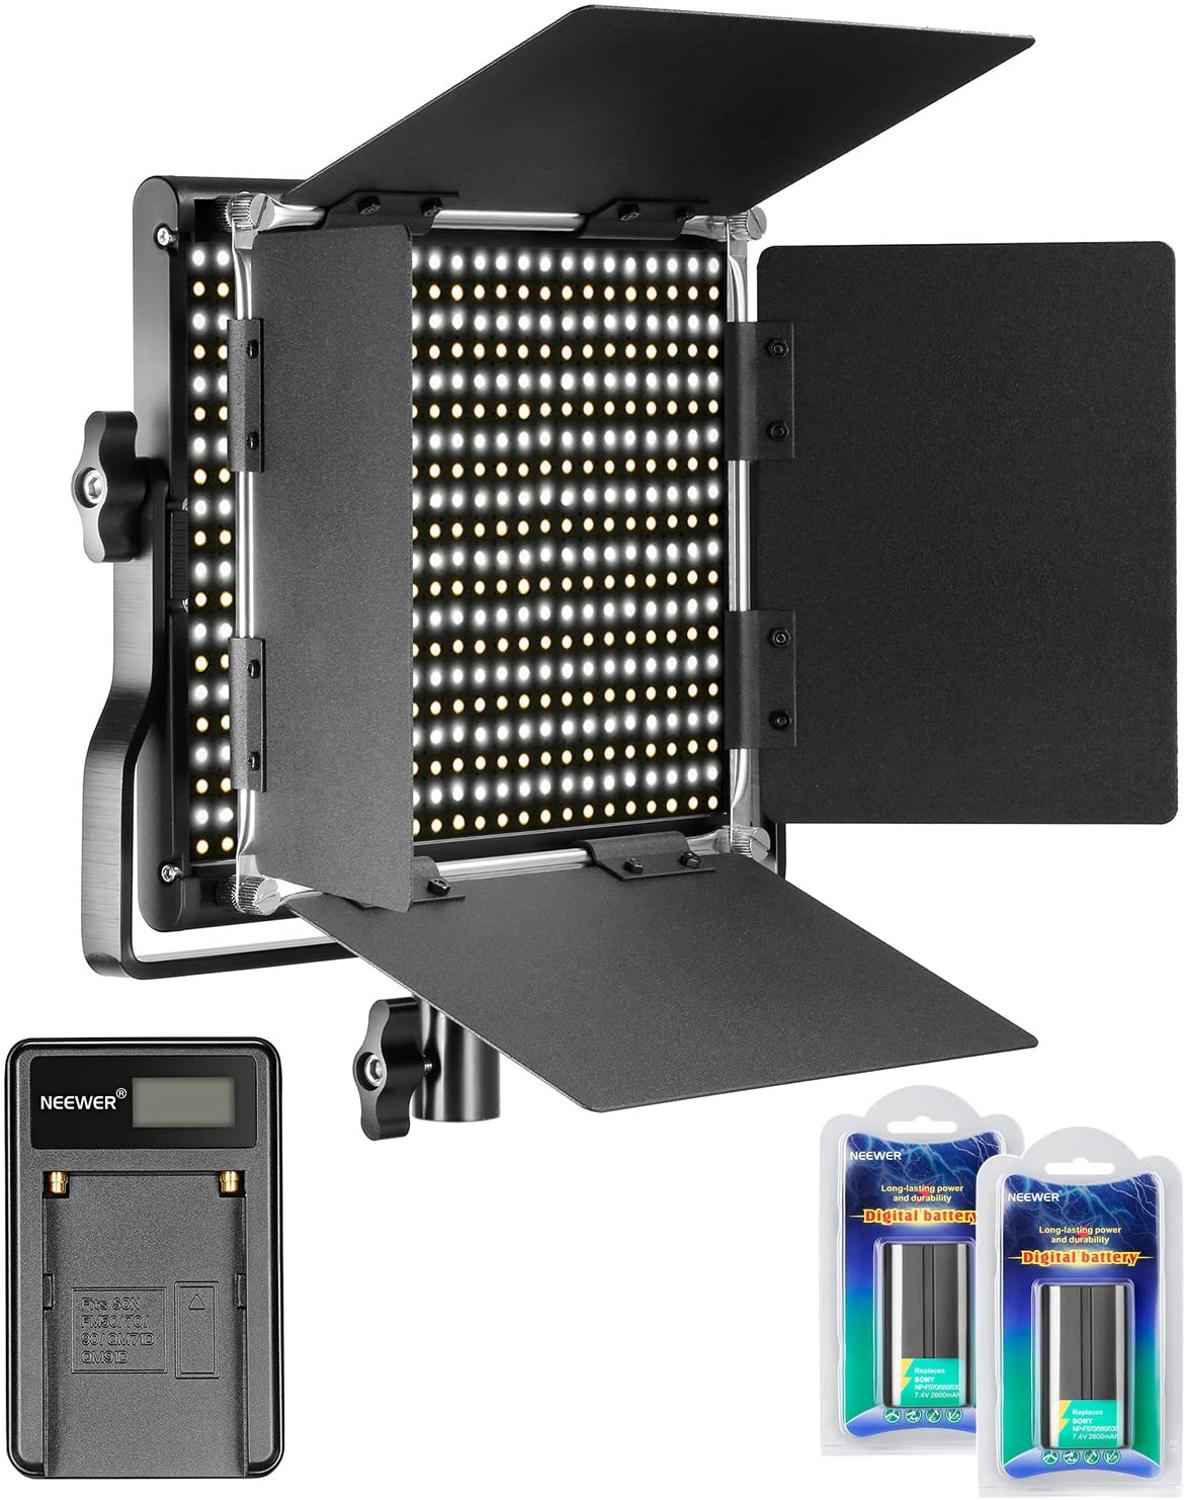 Neewer Dimmable Bi color 660 LED Video Light 3200 5600K with U Bracket+Barndoor+2 Pieces Rechargeable Li ion Battery+USB Charger| |   - AliExpress